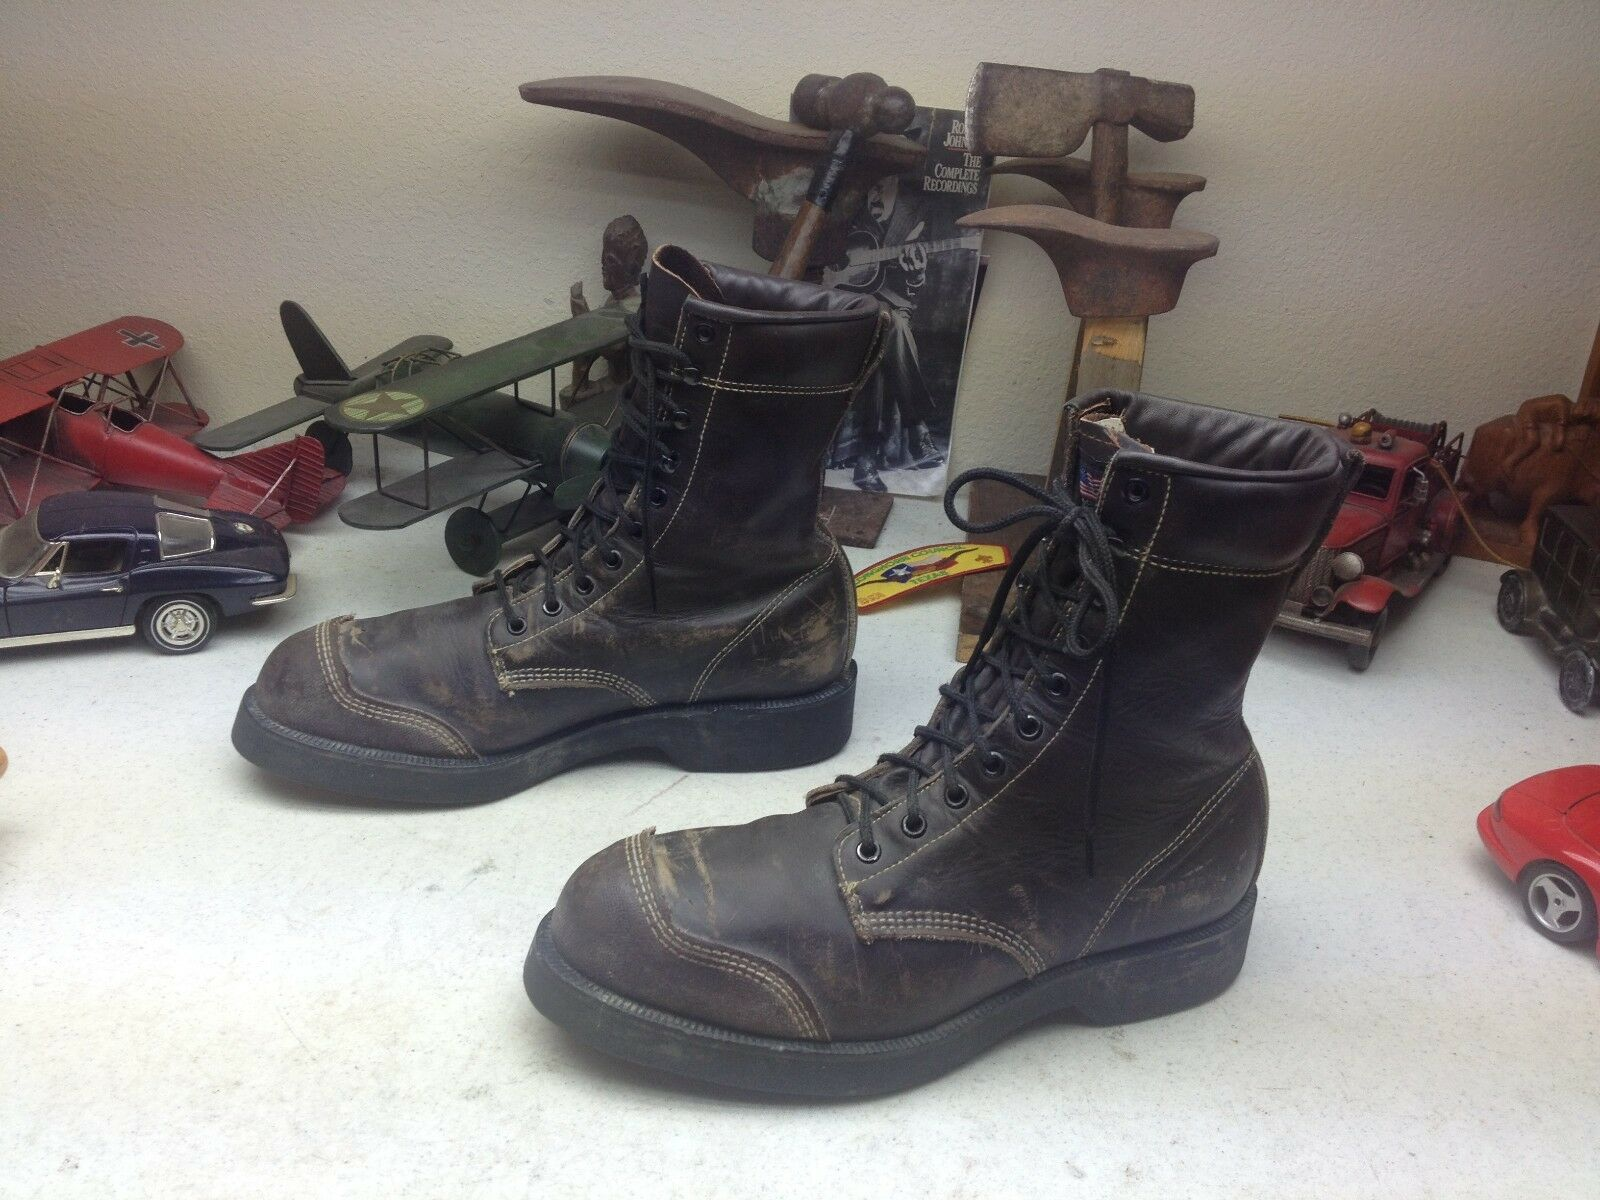 DISTRESSED AFL-CIO USA BROWN LEATHER STEEL TOE LACE UP ENGINEER BOSS BOOTS 9 D